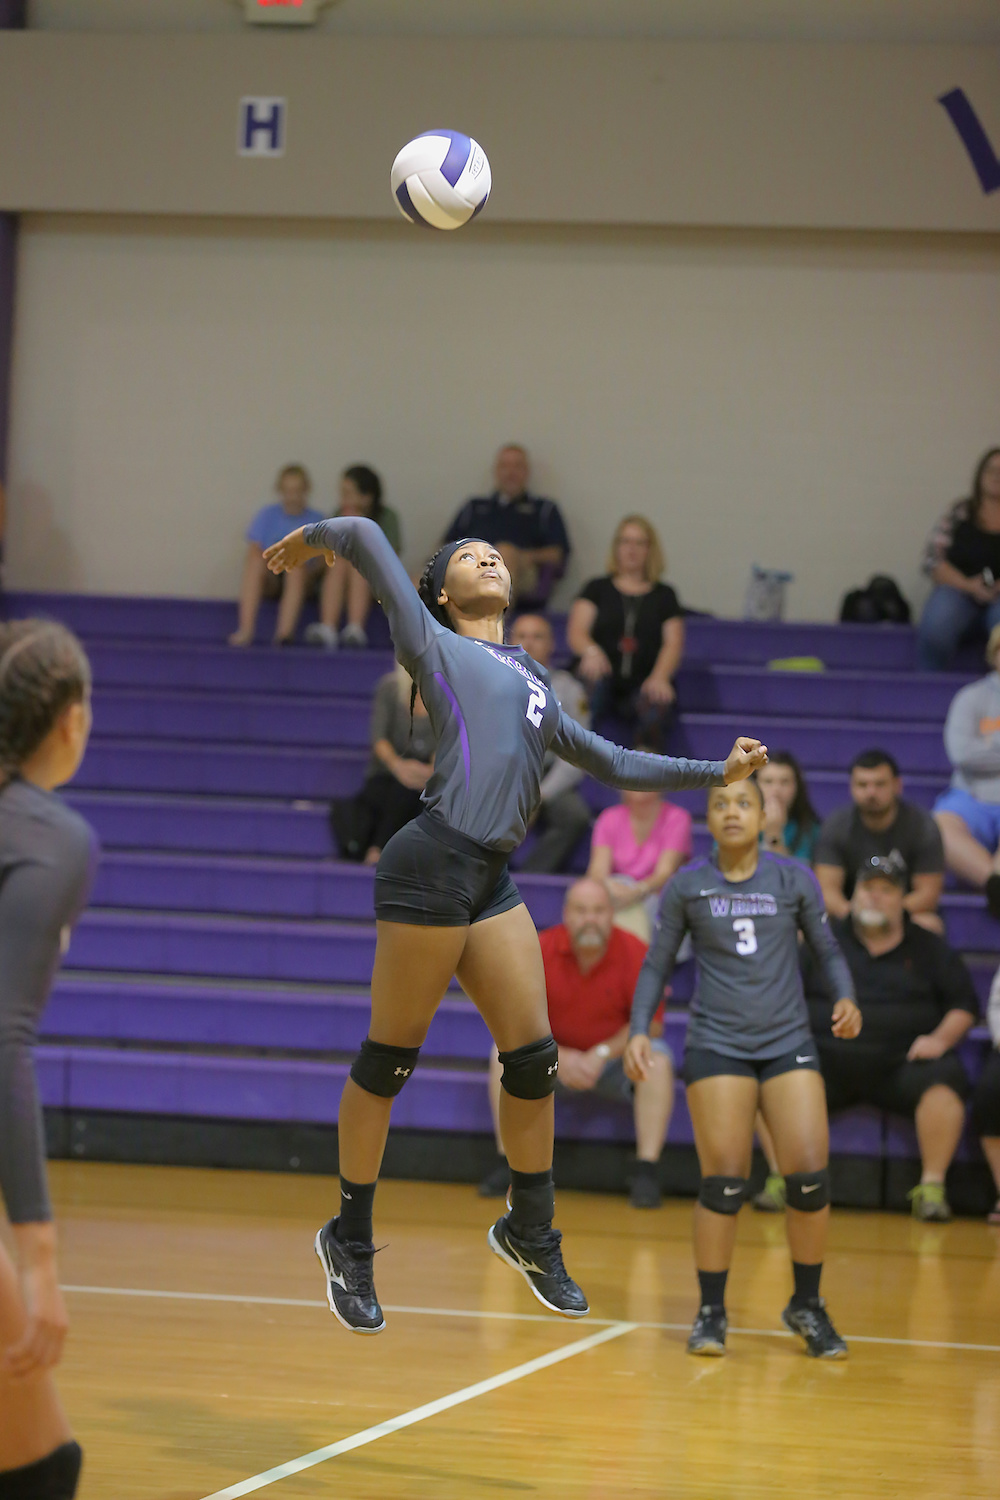 East Columbus v West Bladen volleyball 2017 7